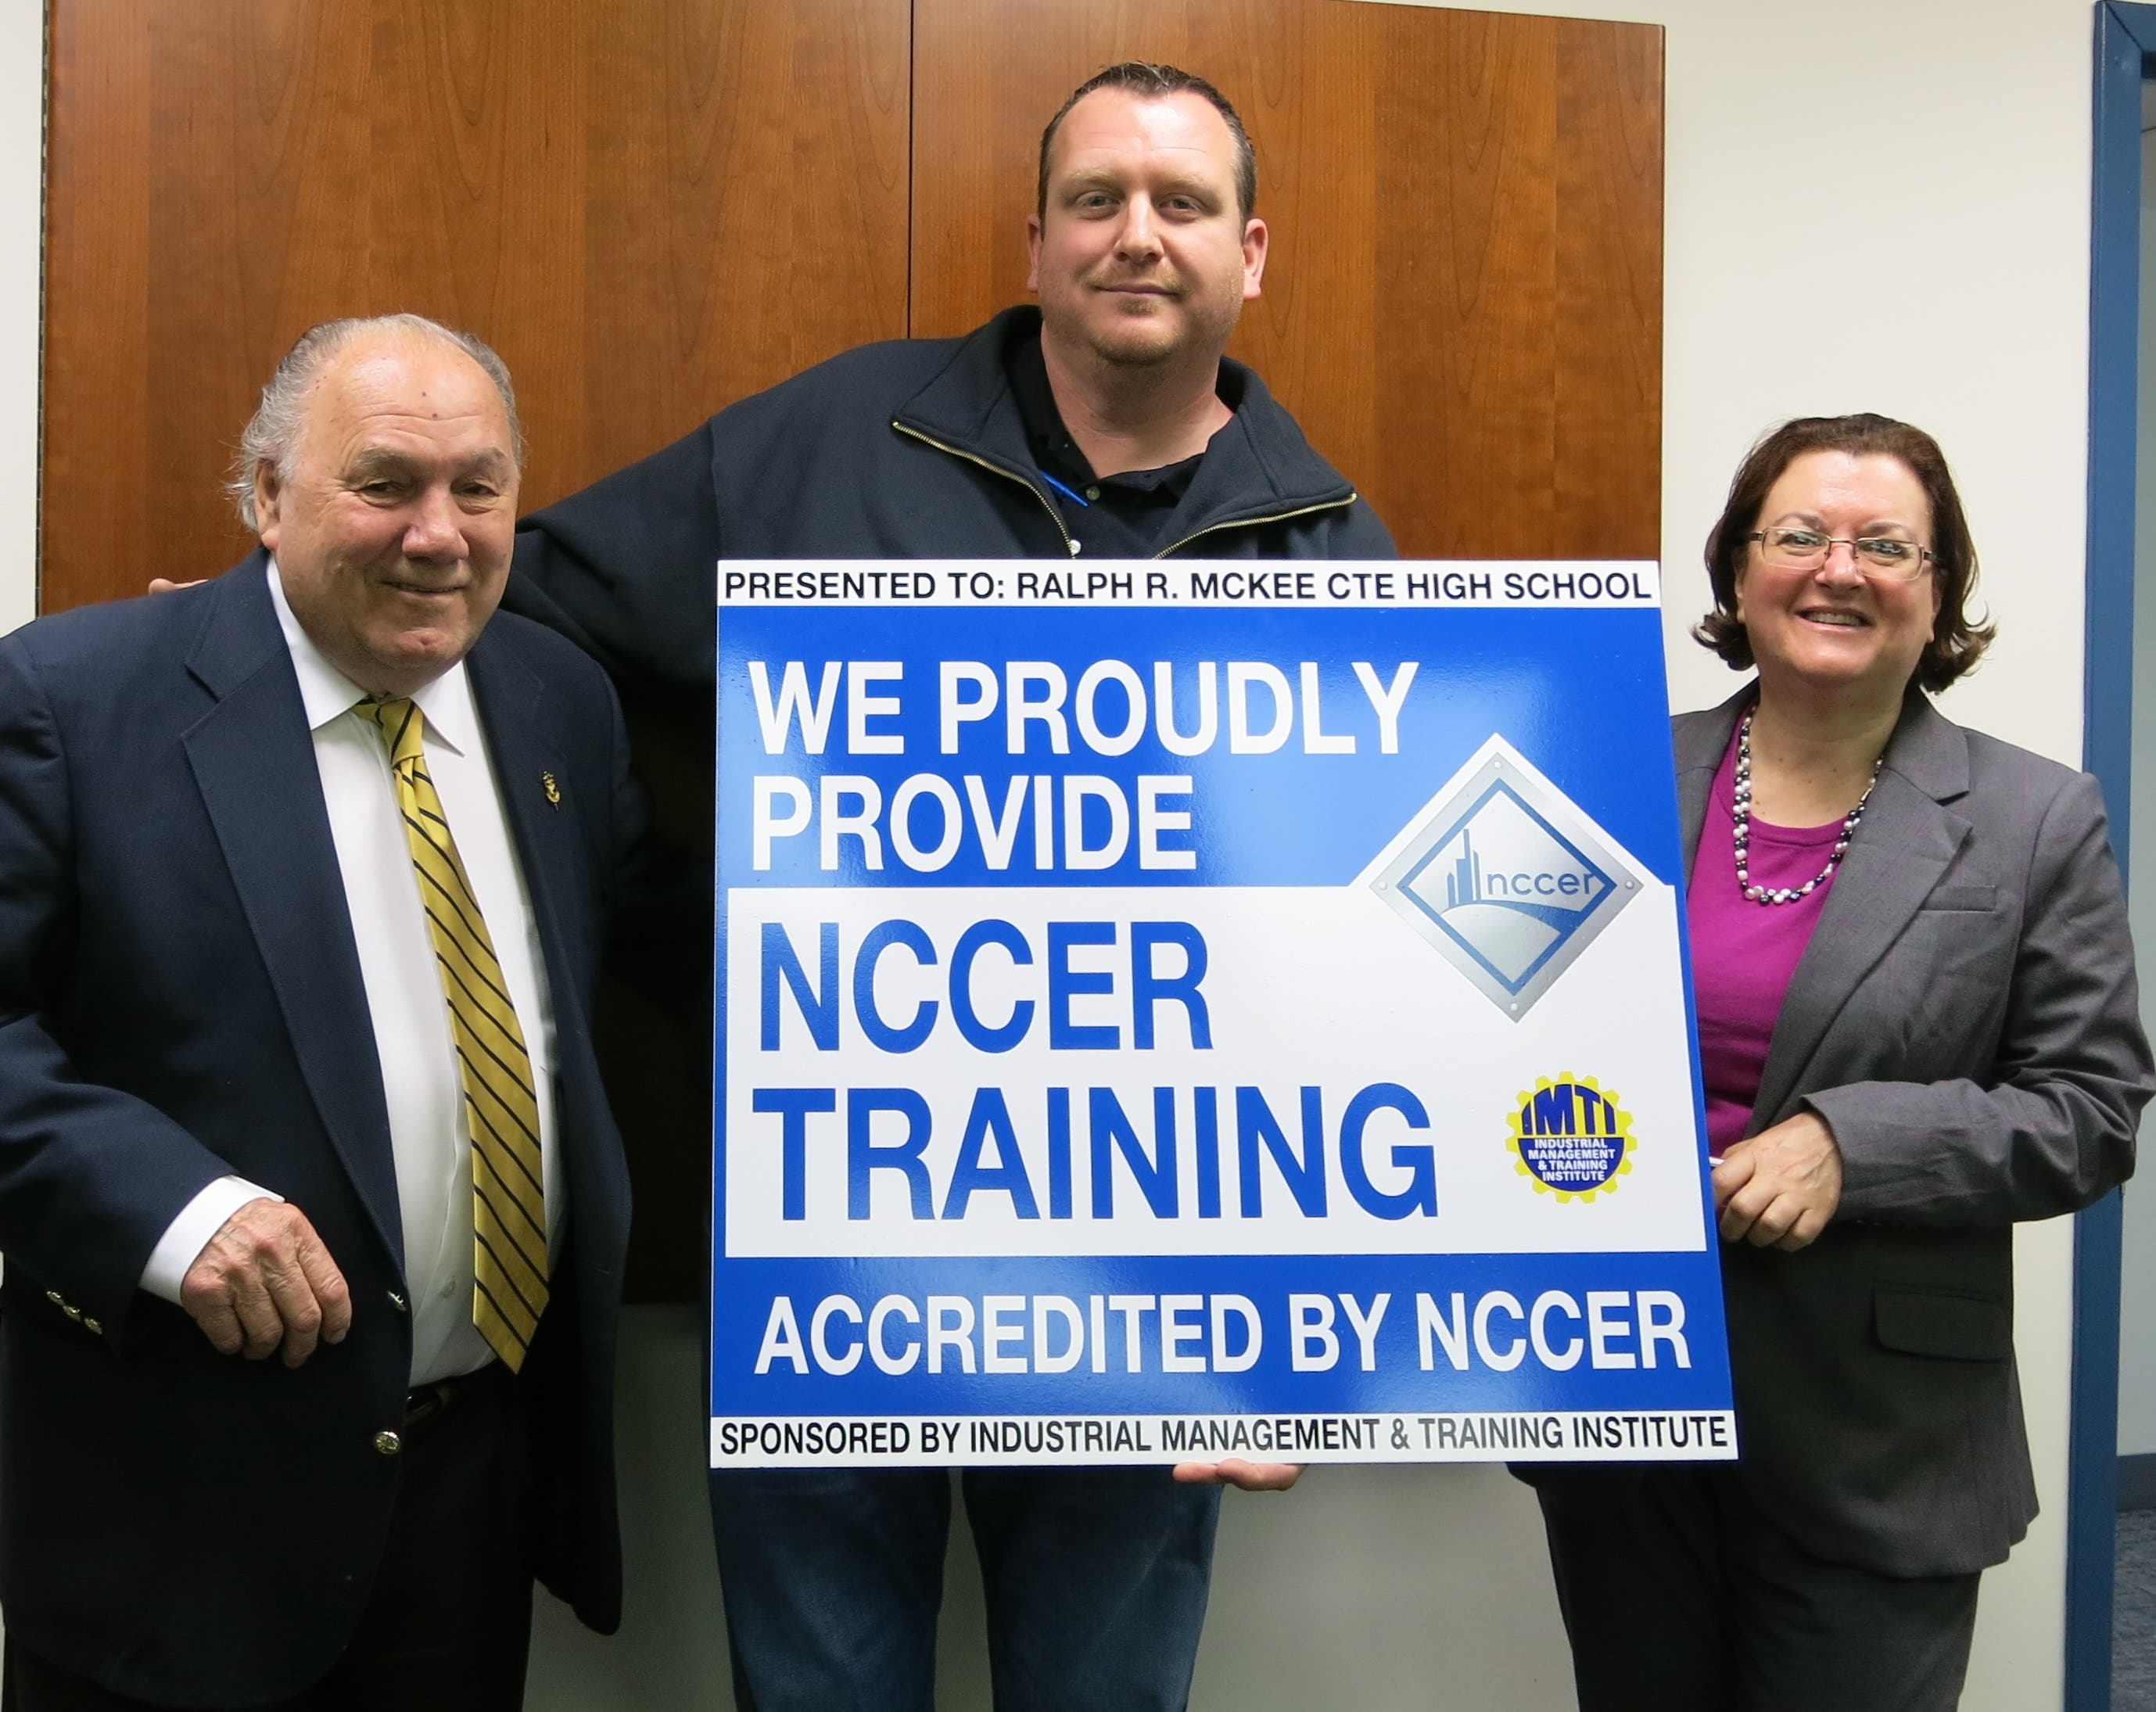 IMTI Recognized by NYC Deptmt  of Education for NCCER